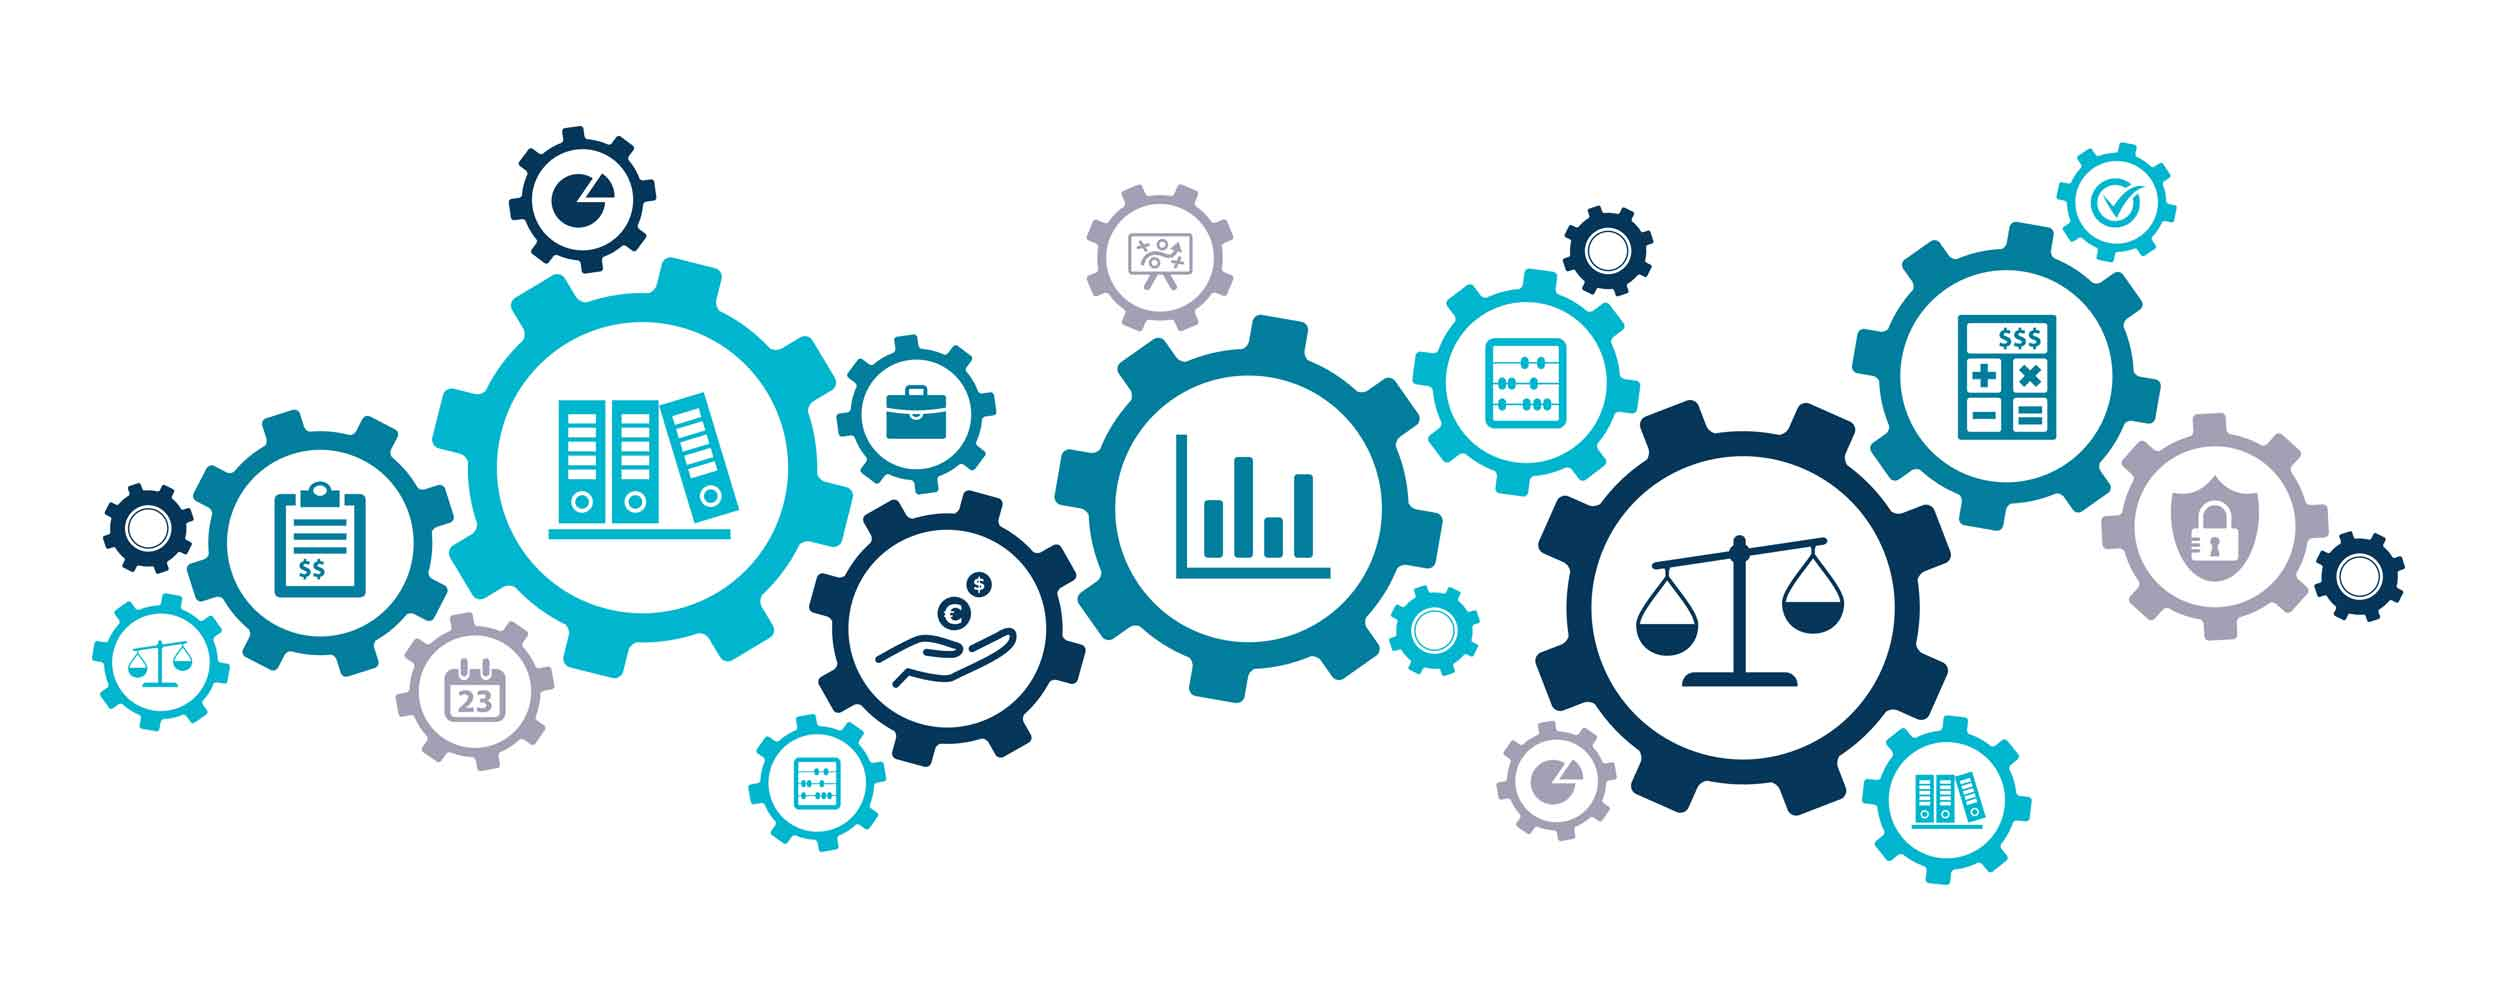 Mobile image Teal and blue cogs with bookkeeping and accounting icons